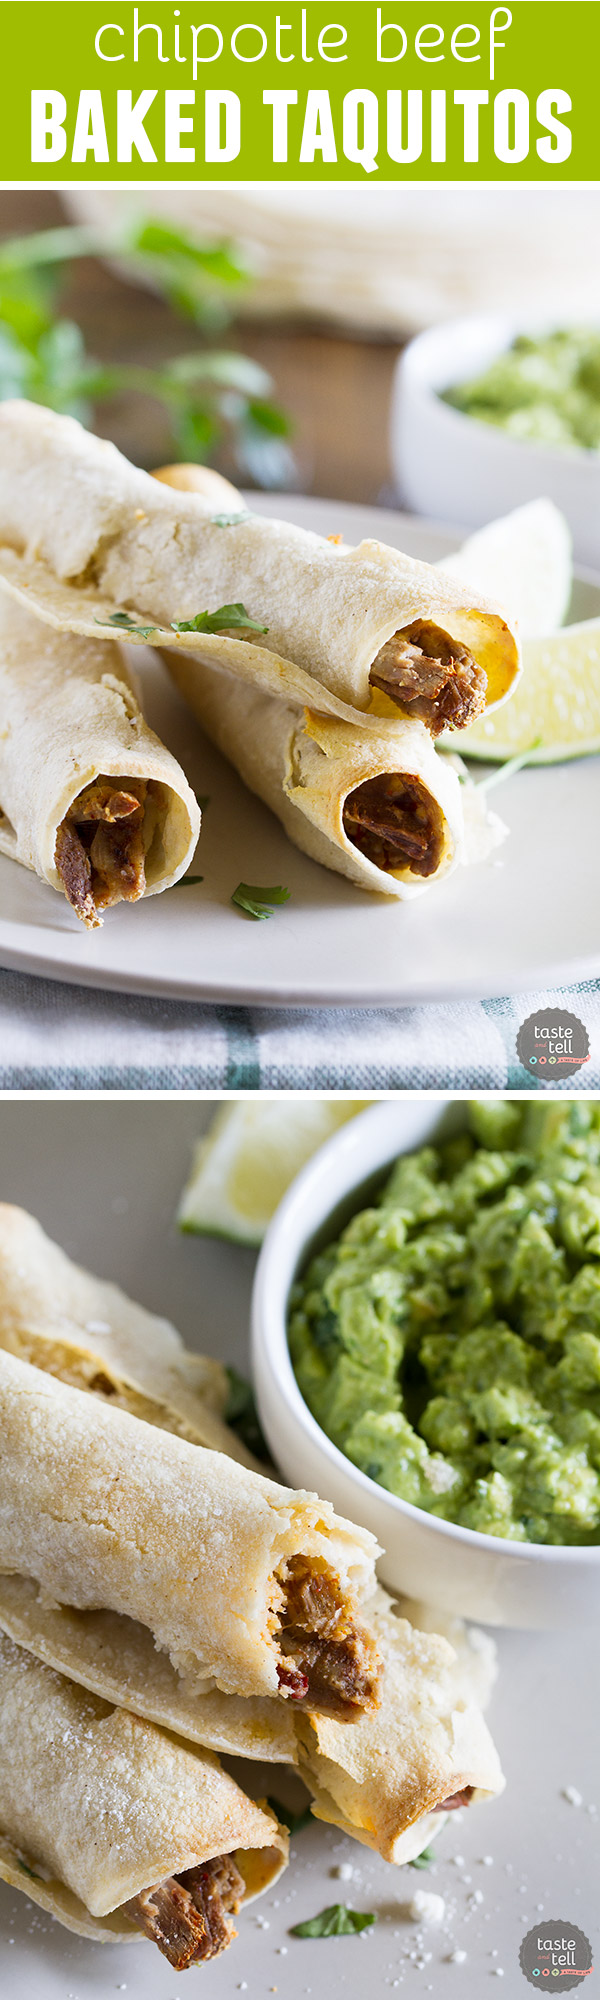 Wondering what to do with that leftover Sunday roast? Turn it into this Chipotle Beef Baked Taquito recipe and those leftovers will disappear!